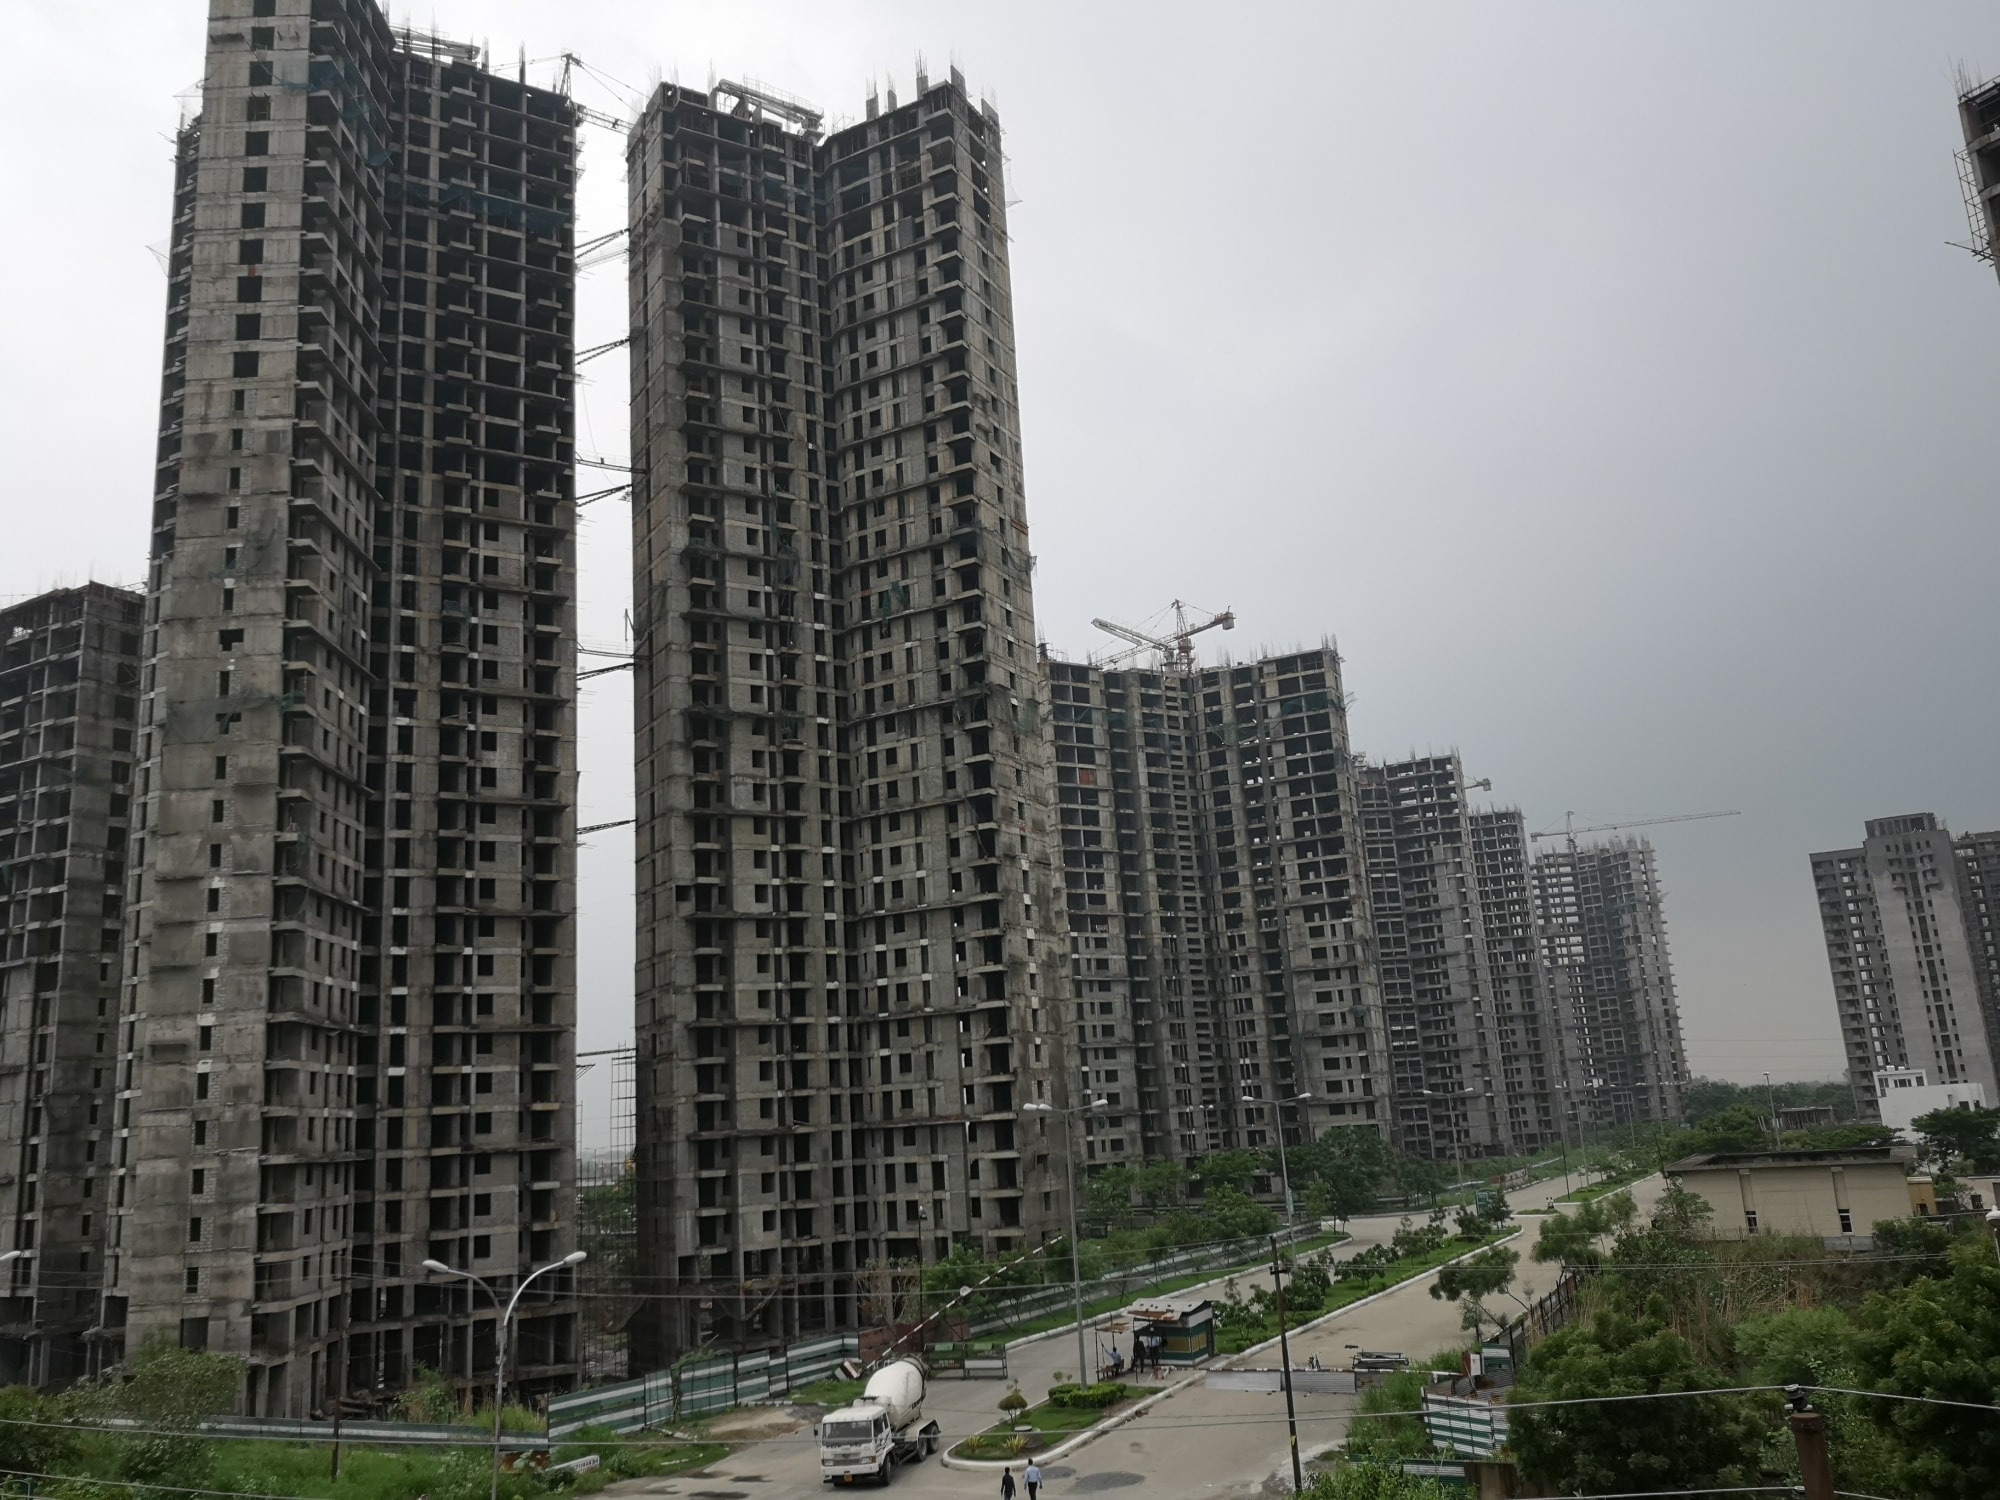 9. Fitch Ratings On Developers: With non-bank financial companies (NBFCs) and housing finance companies becoming risk averse towards lending to real-estate sector, developers are likely to face a liquidity crisis, says a report. Majority of the developers with a weak balance sheet depend on the parallel banking sector for funds. These players are likely to be affected the most if the situation persists. (Image: IANS)